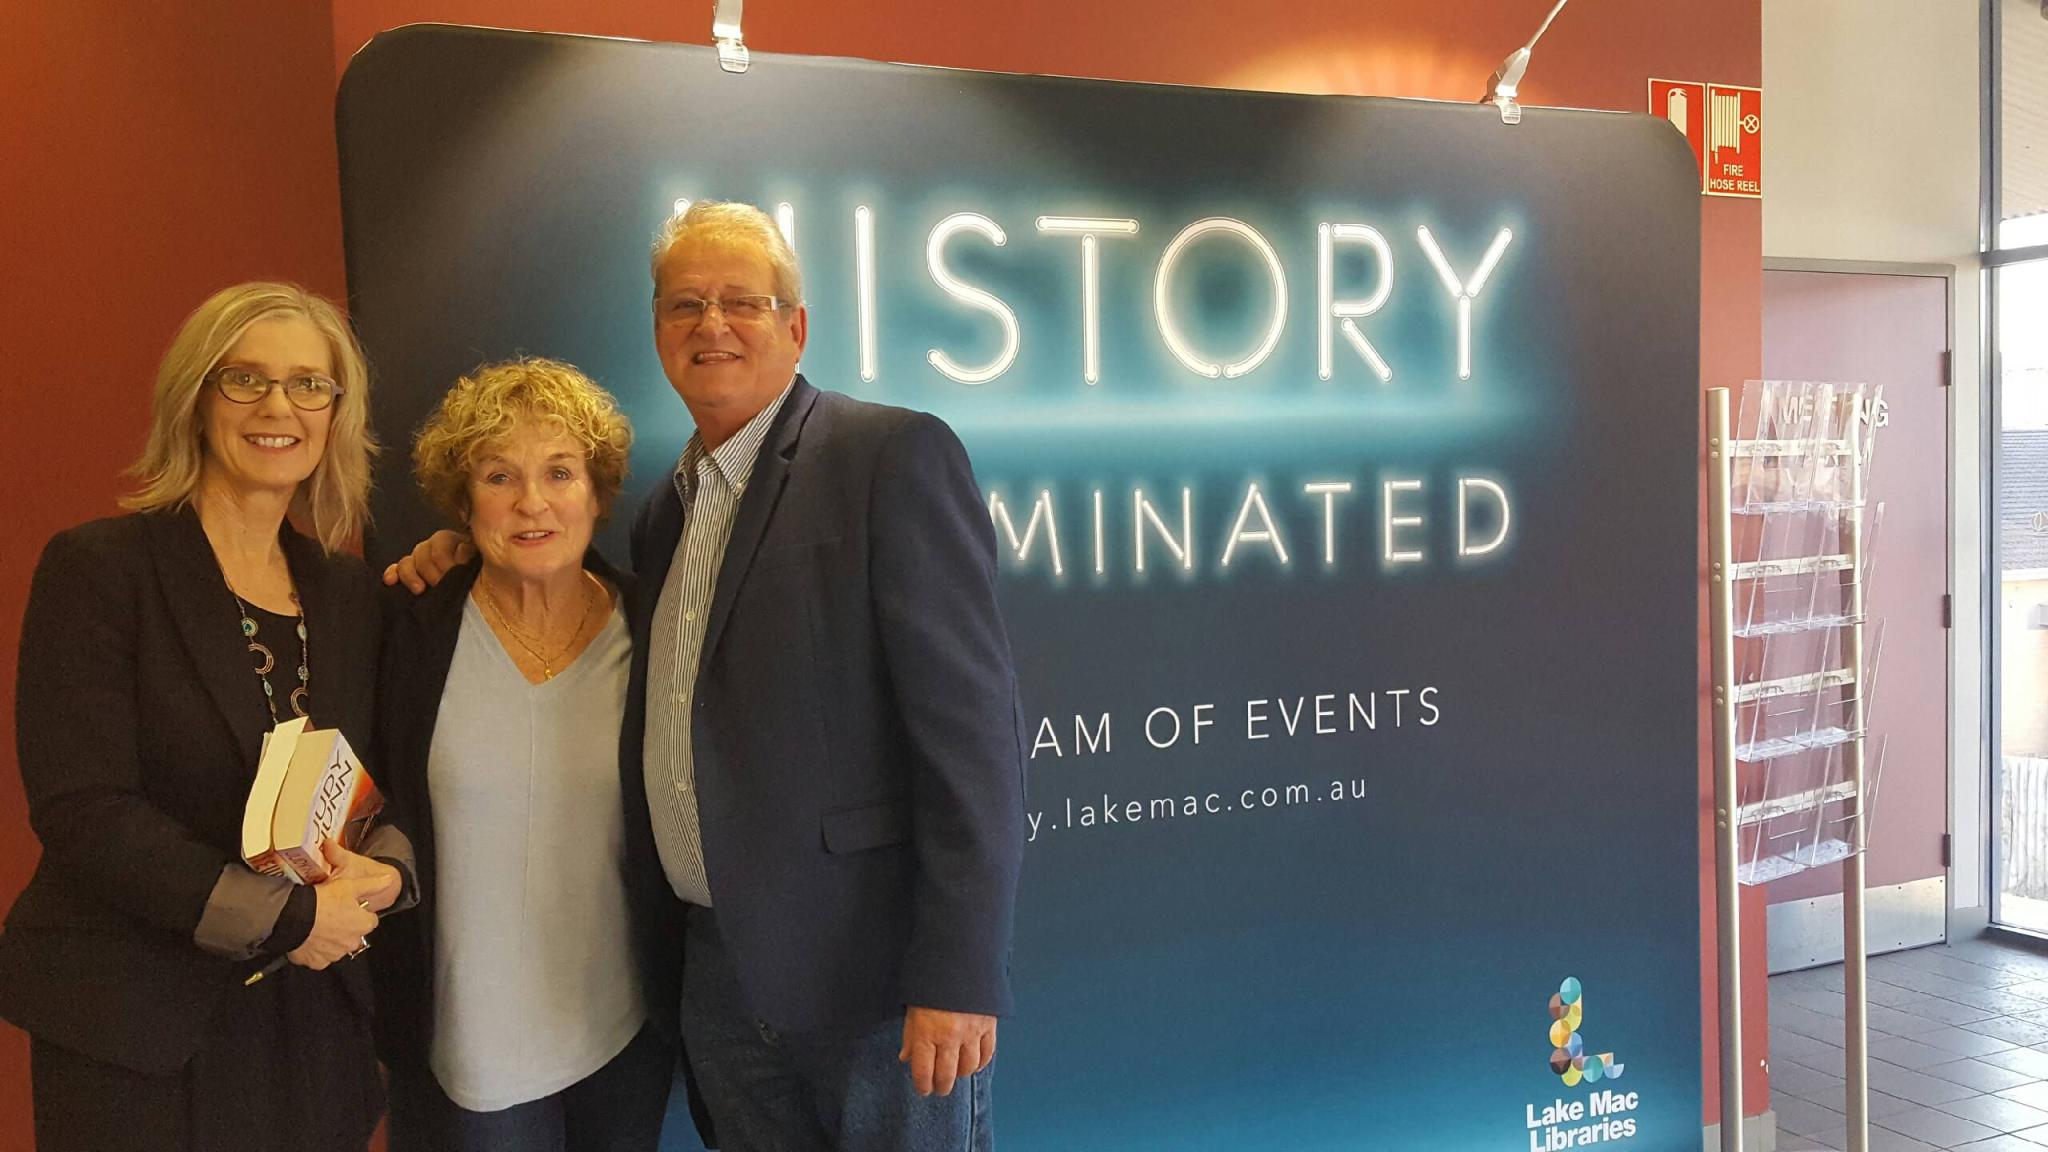 So much fun interviewing Judy Nunn and Bruce Venables at Belmont Library for History Illumated week at Lake Macquarie Libraries.